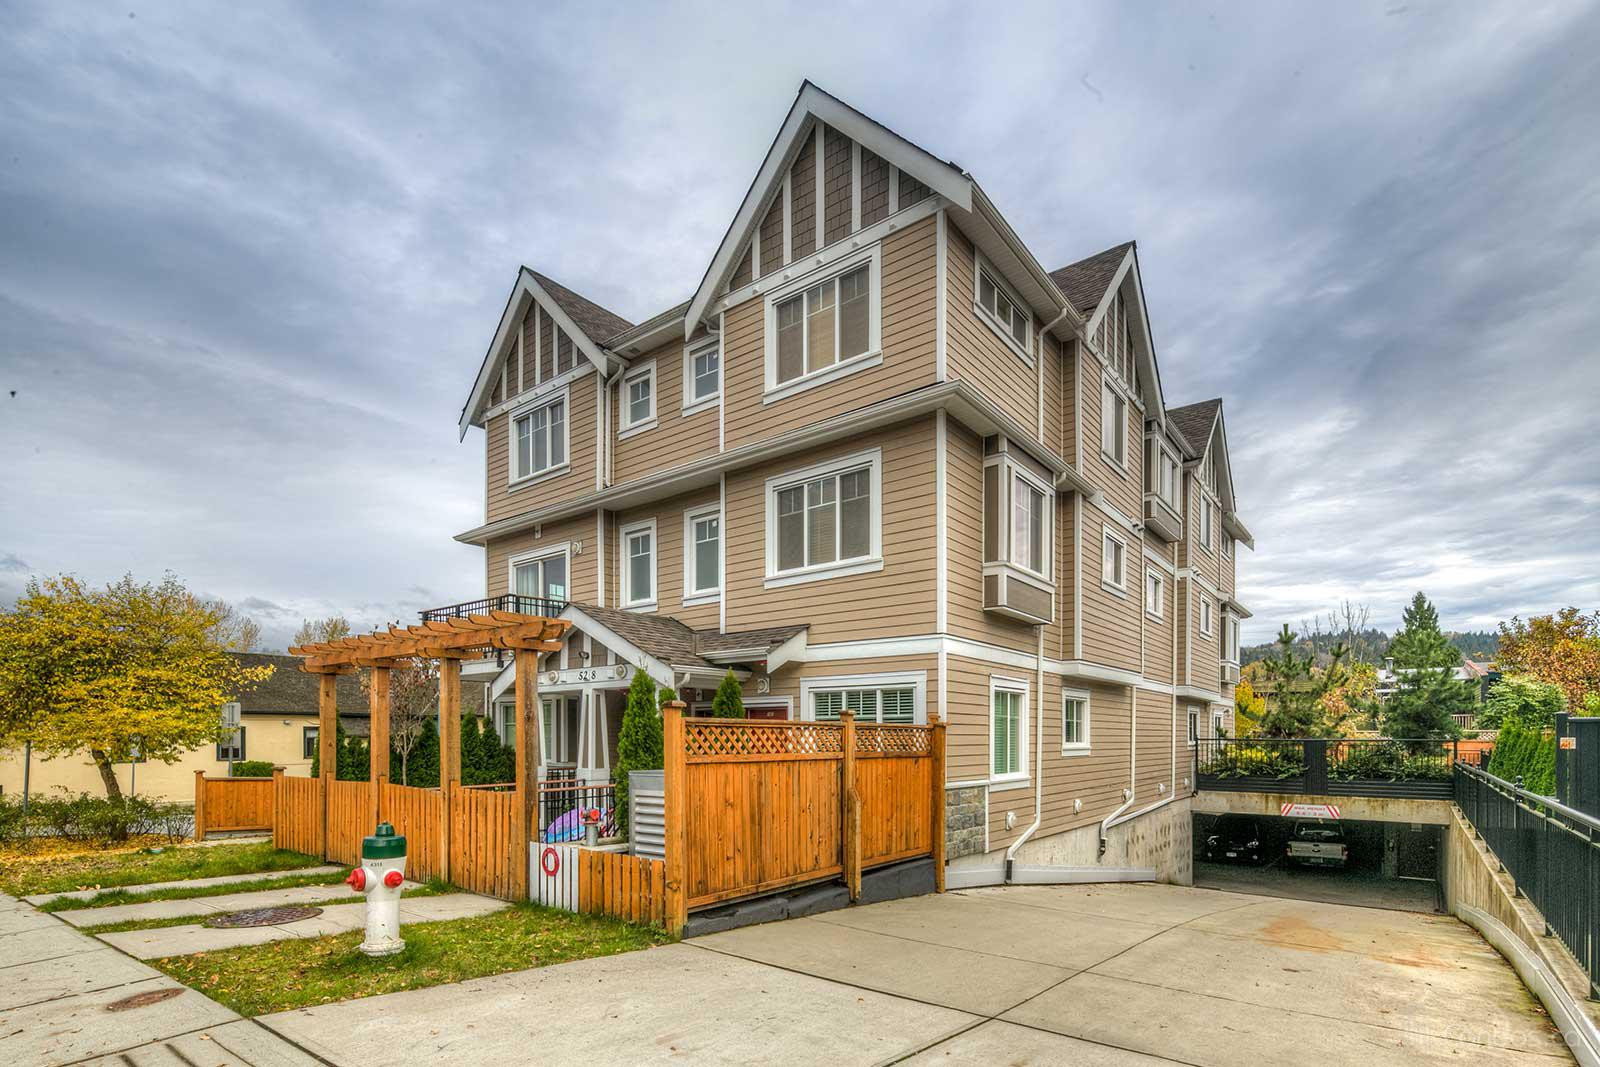 Sperling Heights at 528 Sperling Ave, Burnaby 0